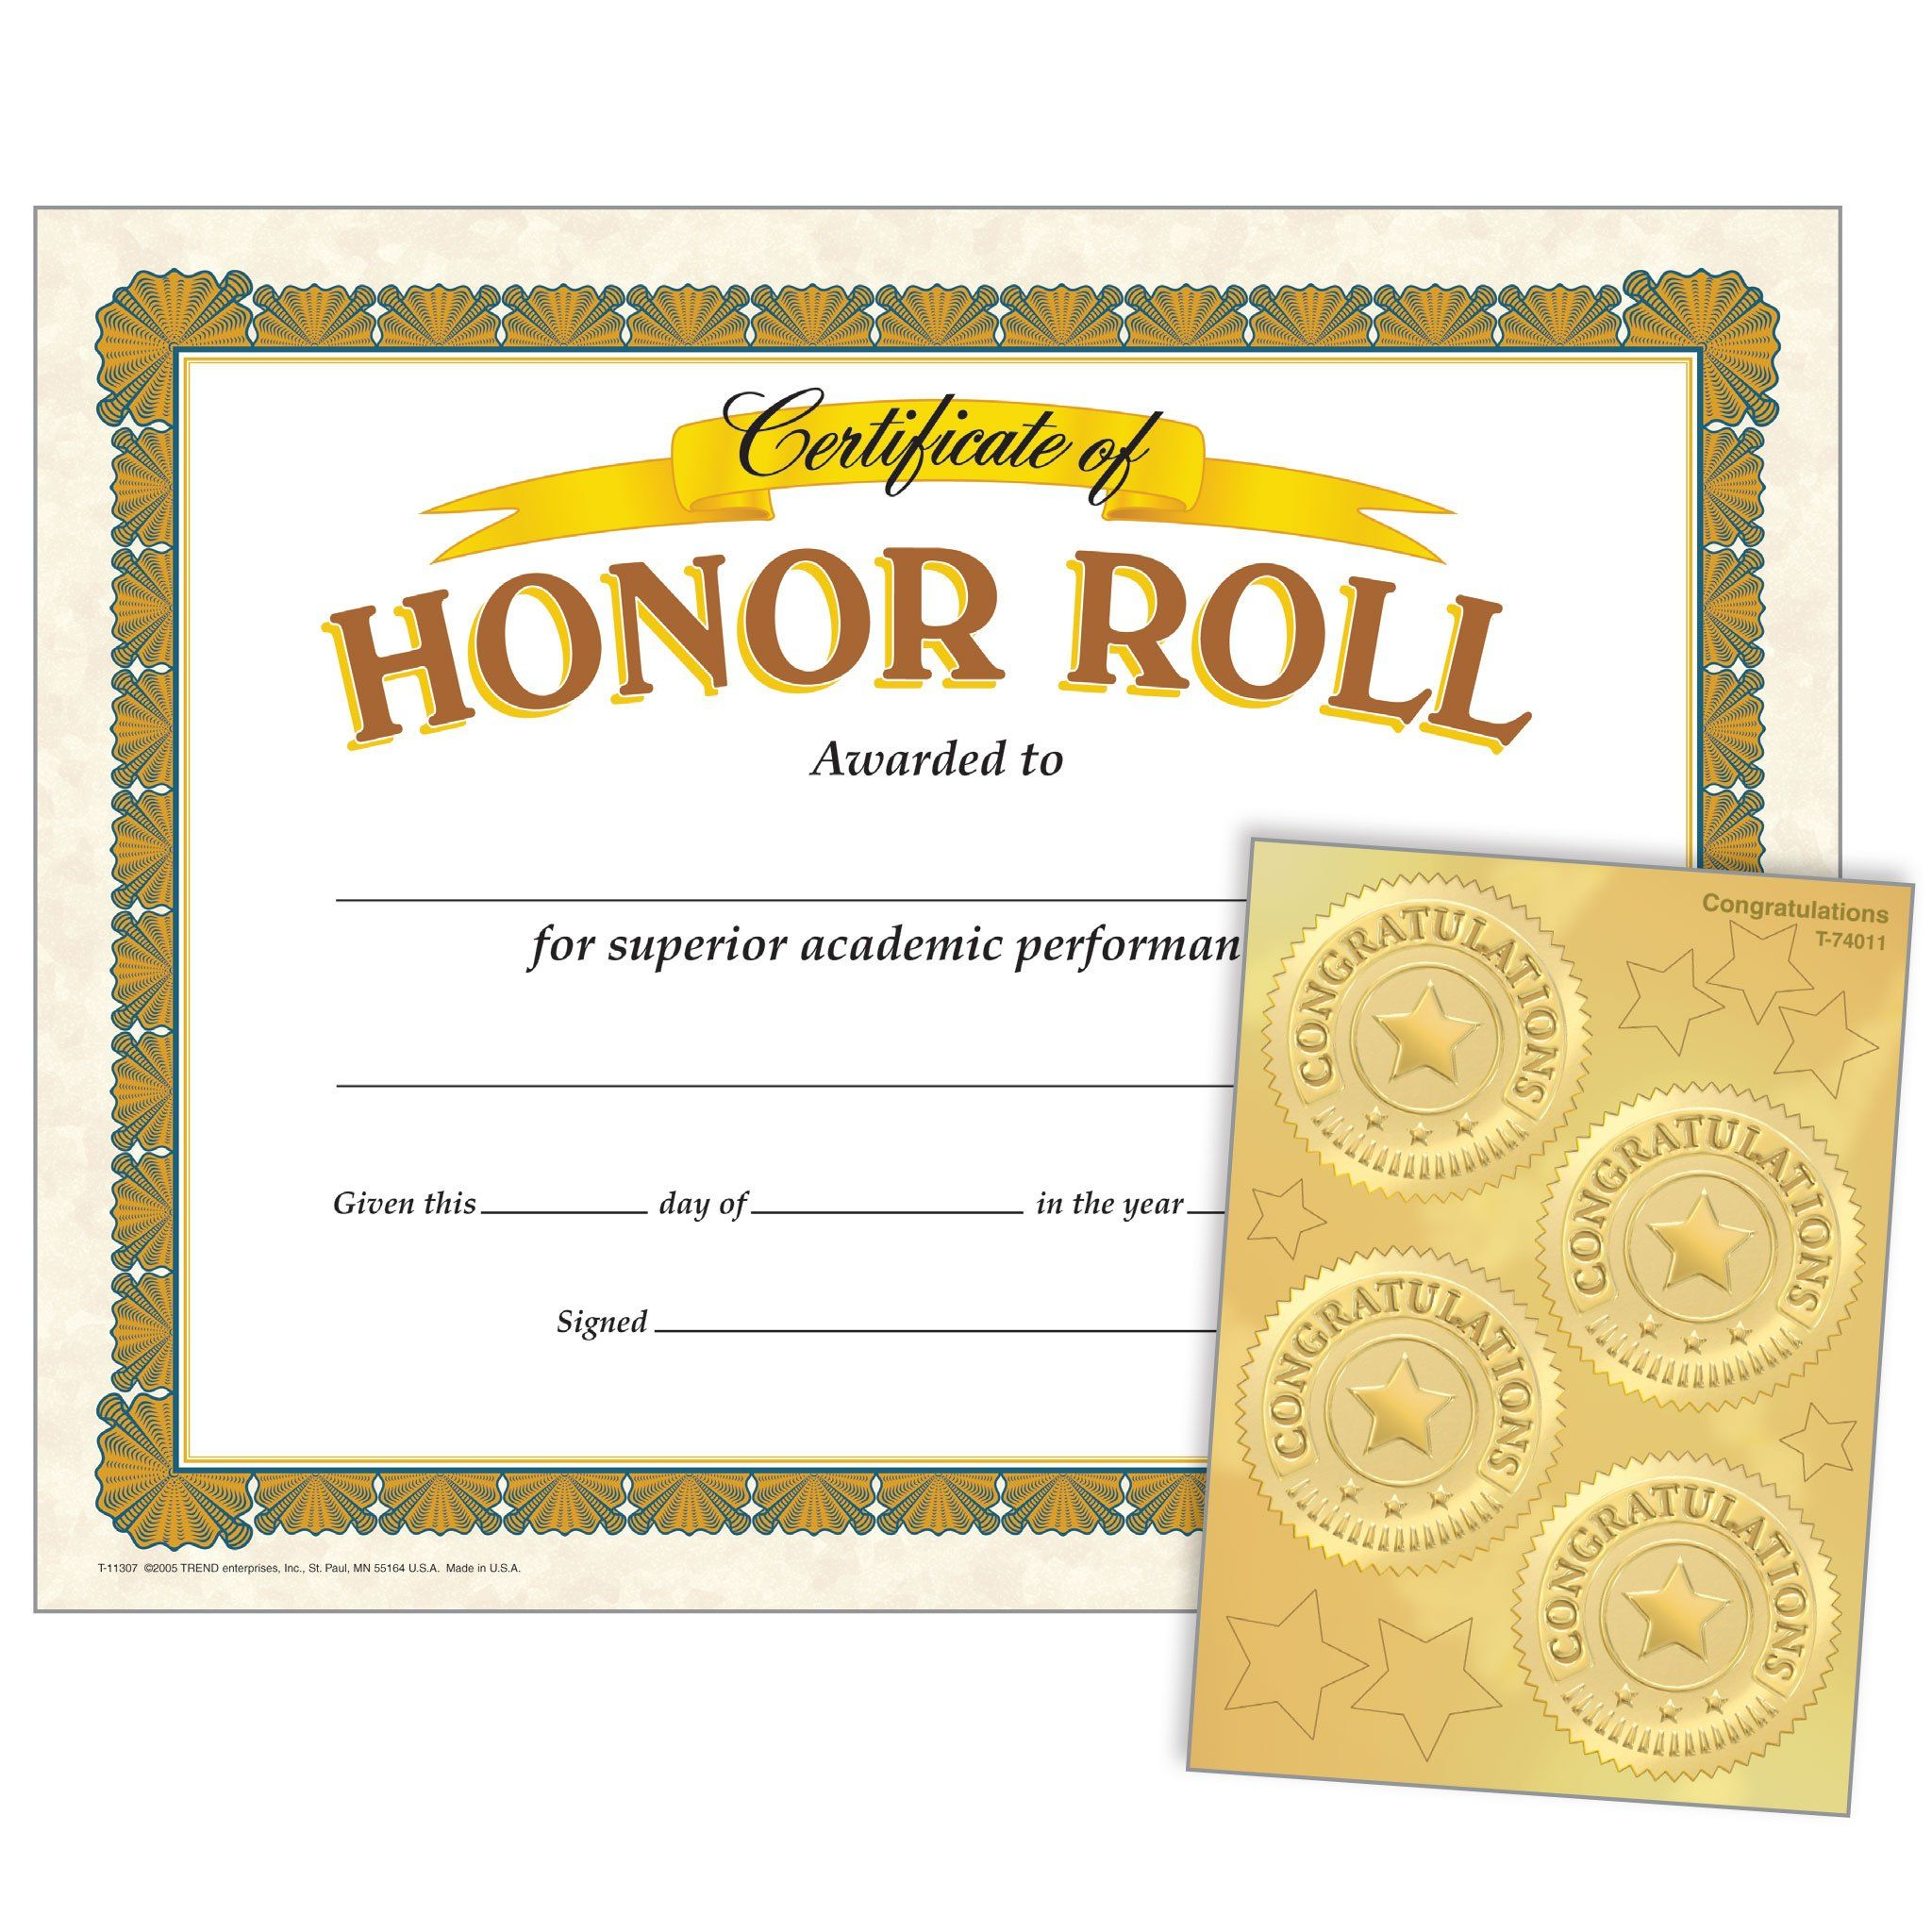 Honor Roll Congratulations Seals Certificates Award Seals Combo Pack In 2021 Certificate Inspired Learning Honor Roll All a honor roll certificate